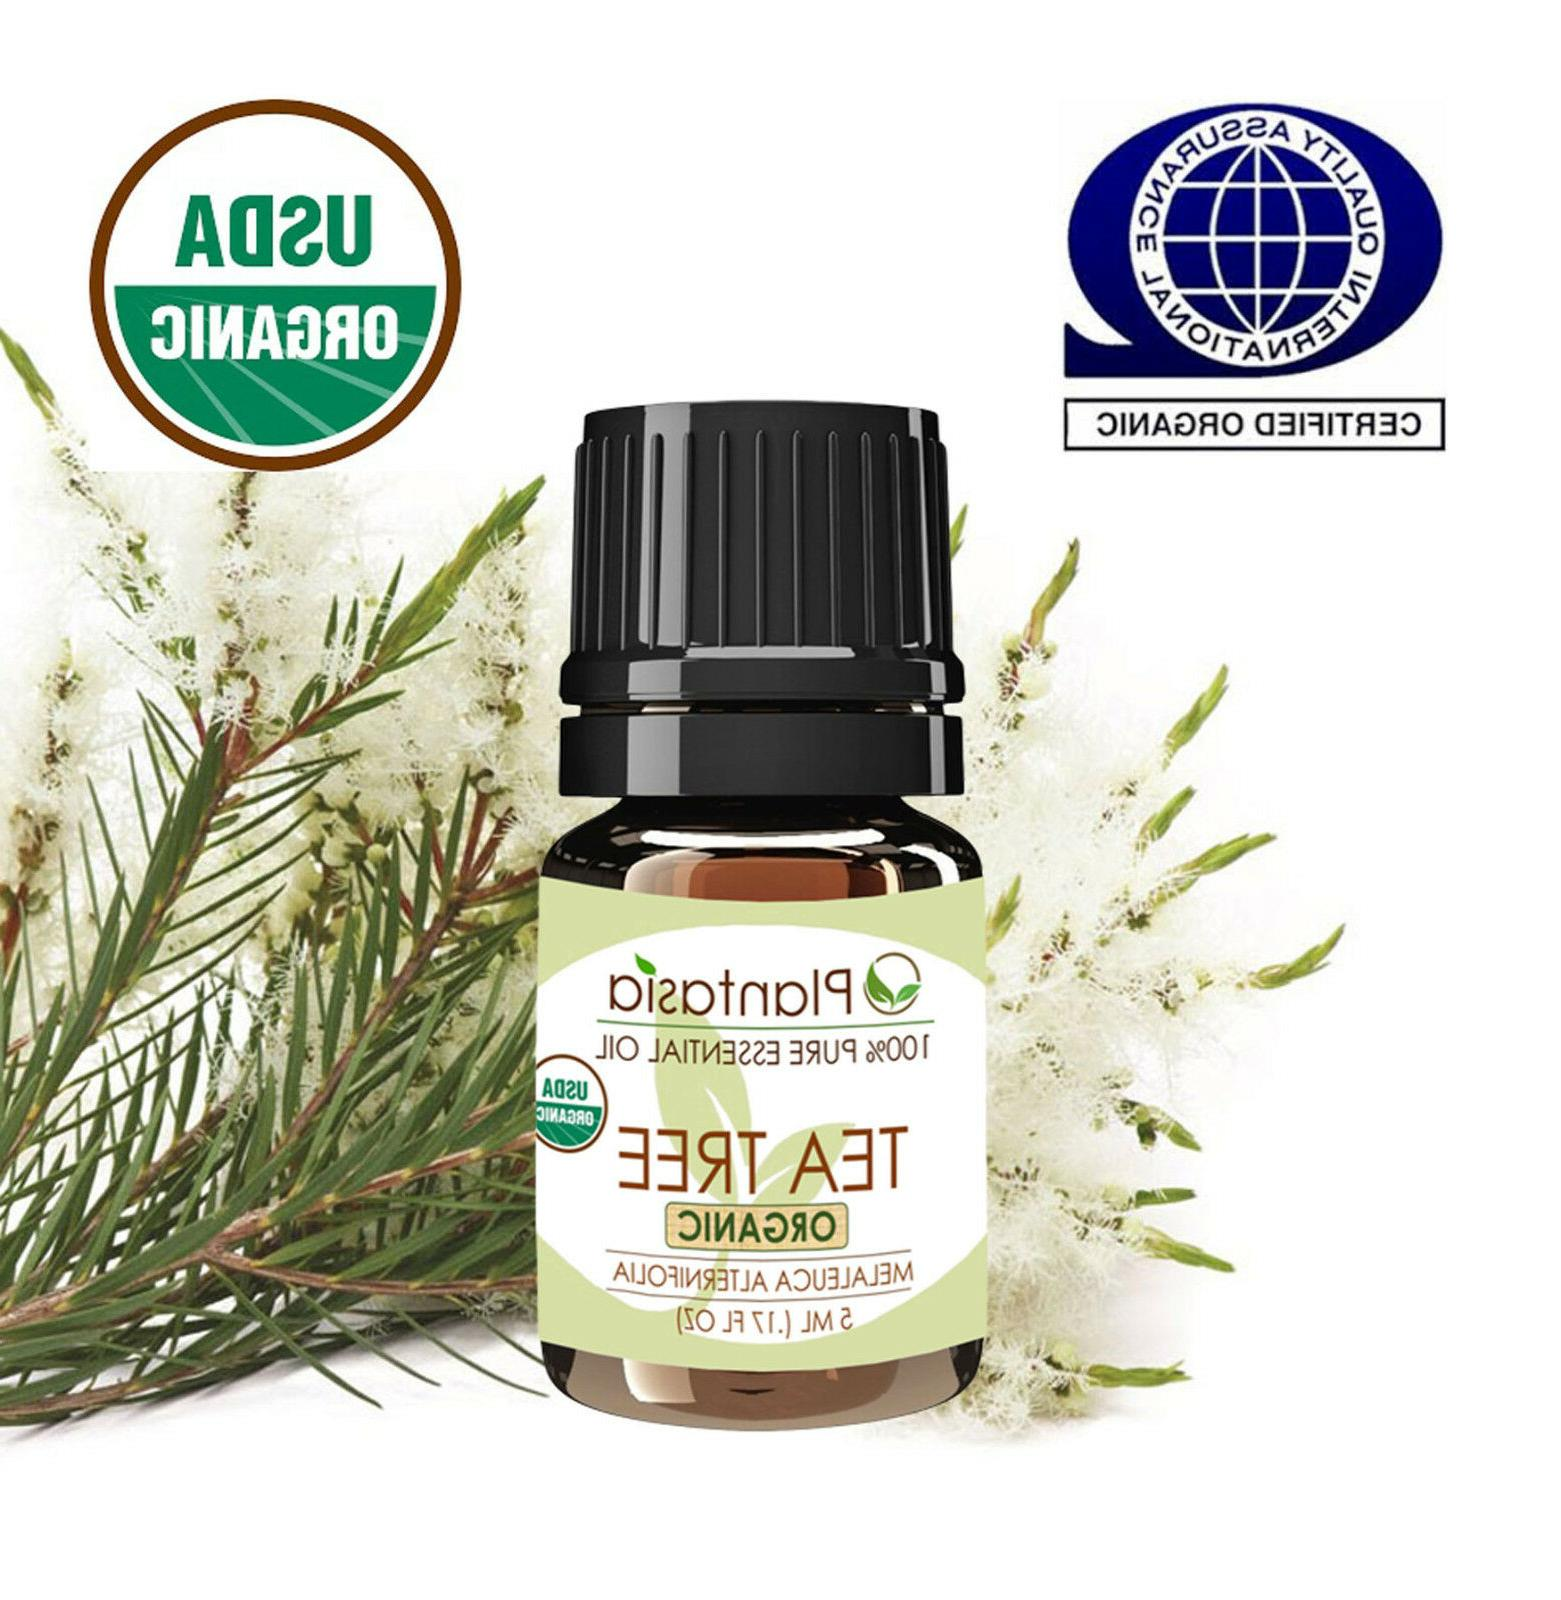 Tea Organic Oil Therapeutic Plantasia